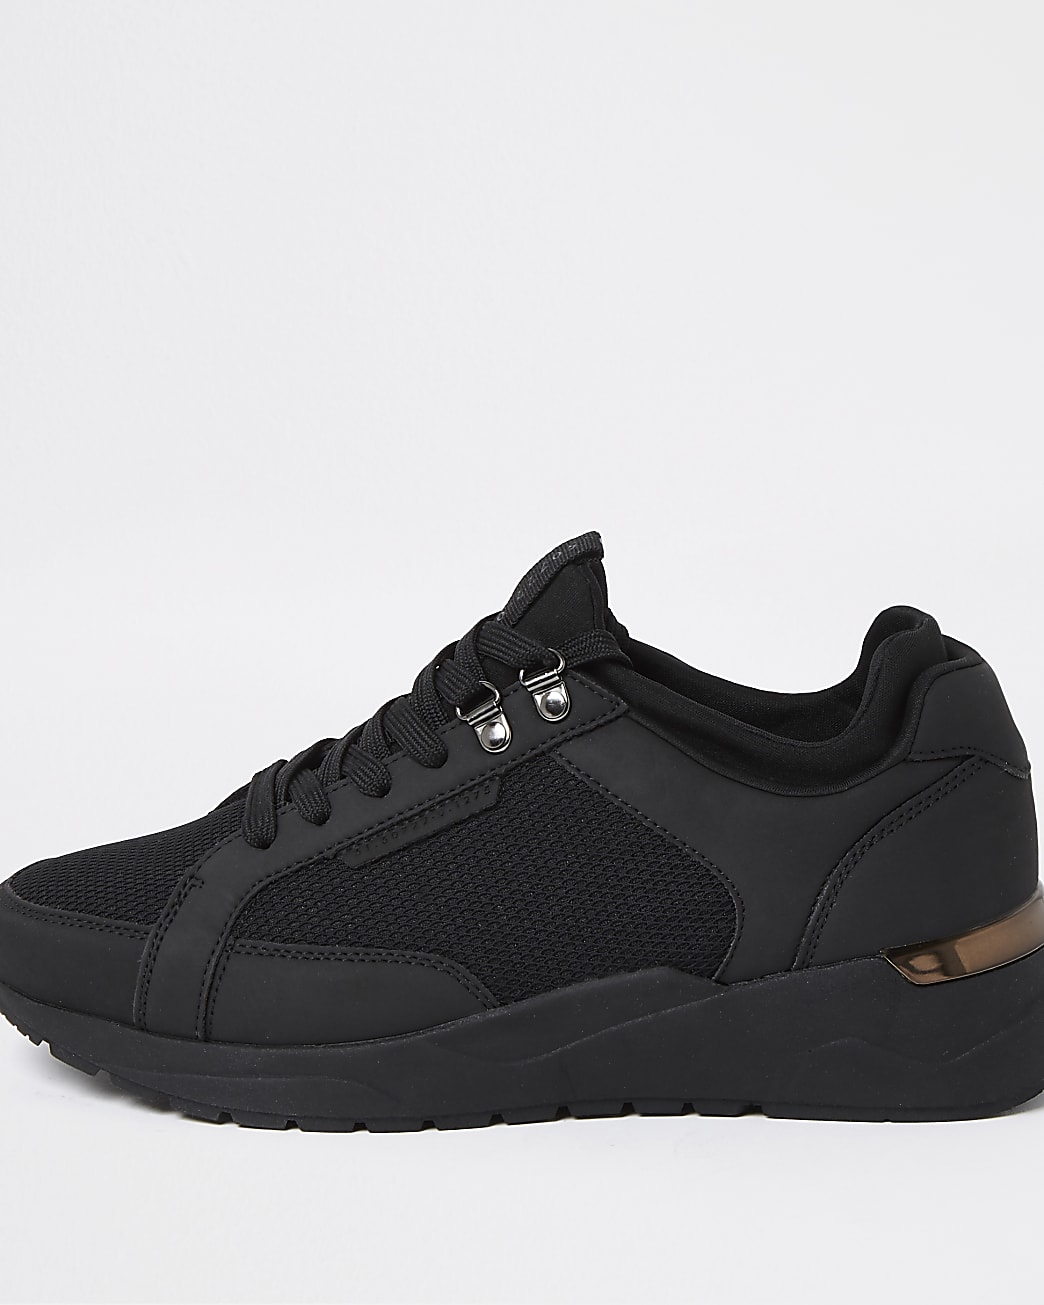 Black mesh lace up trainers